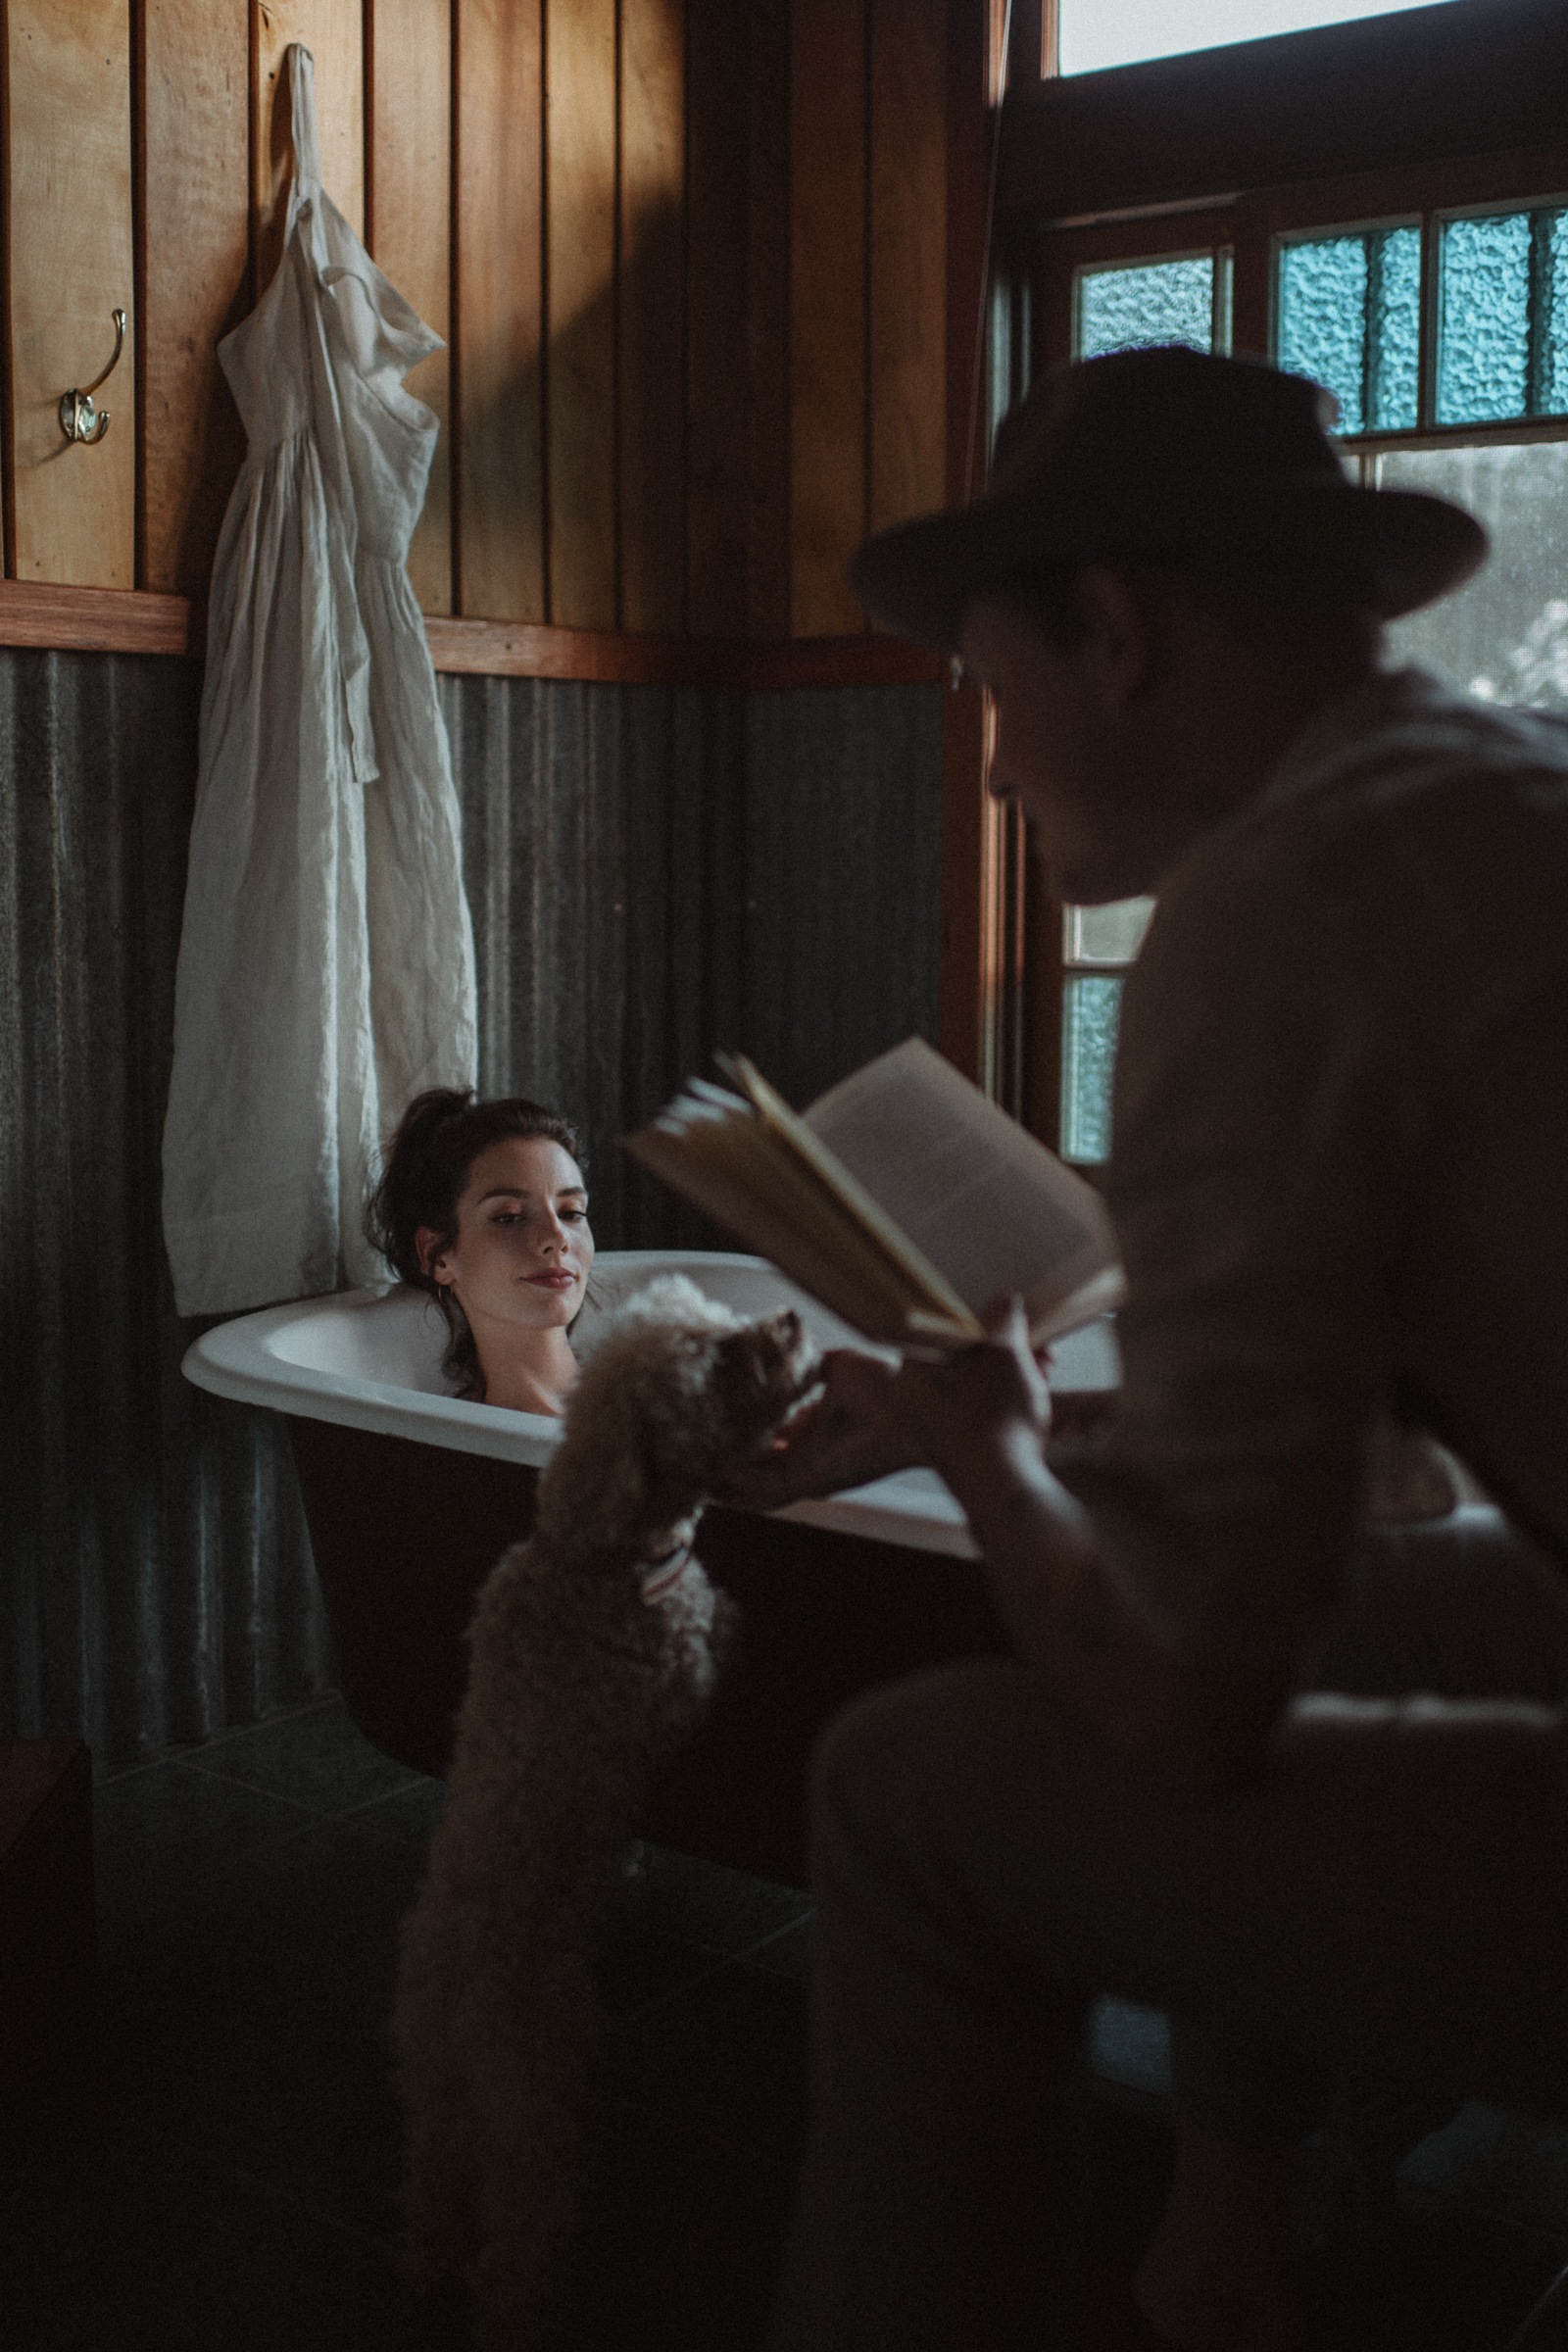 Groom reads story to bride in bath - photo by Ben Sowry - Australia